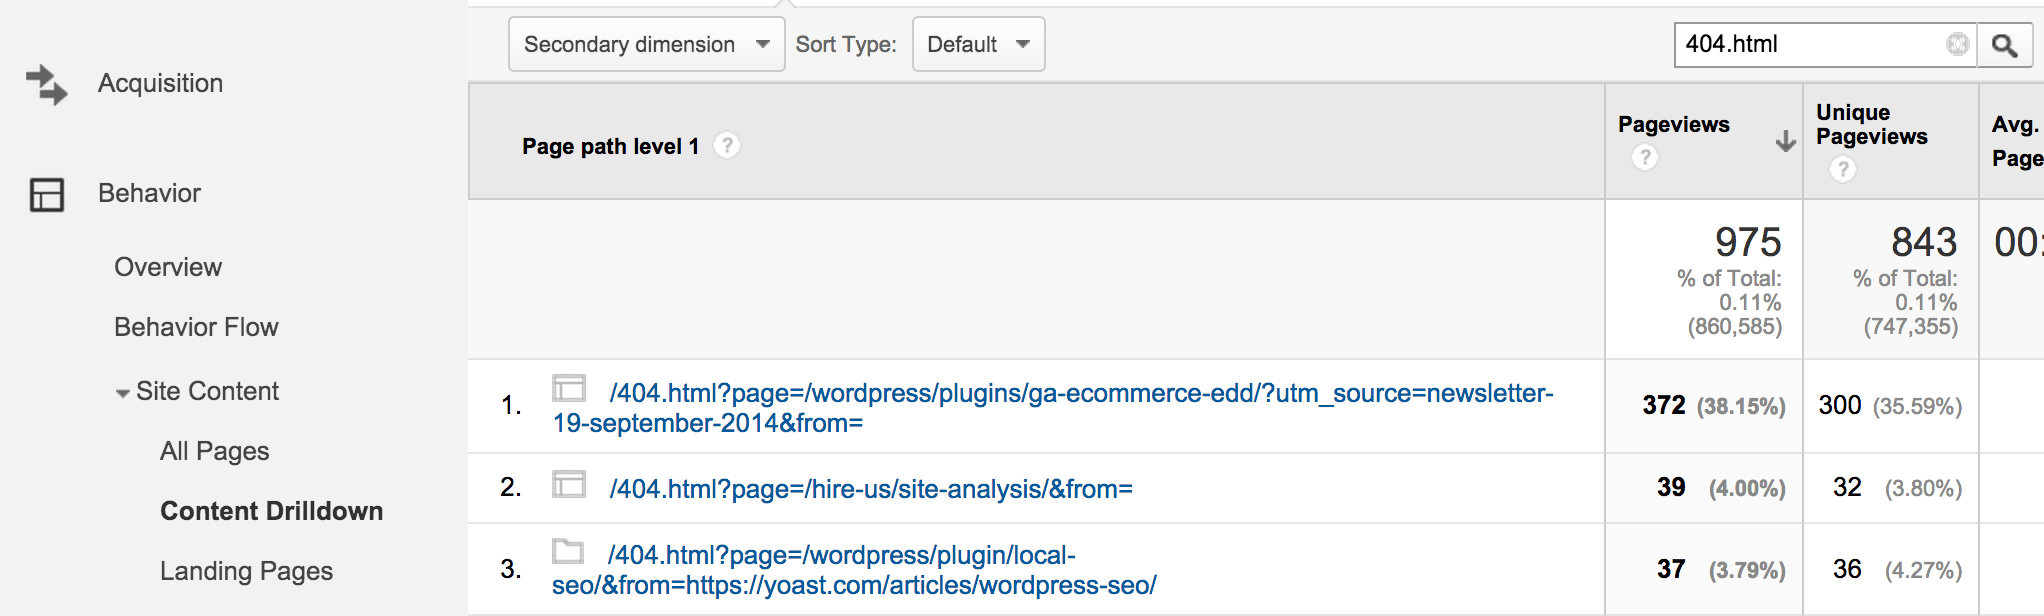 Google Analytics report showing 404 error pages